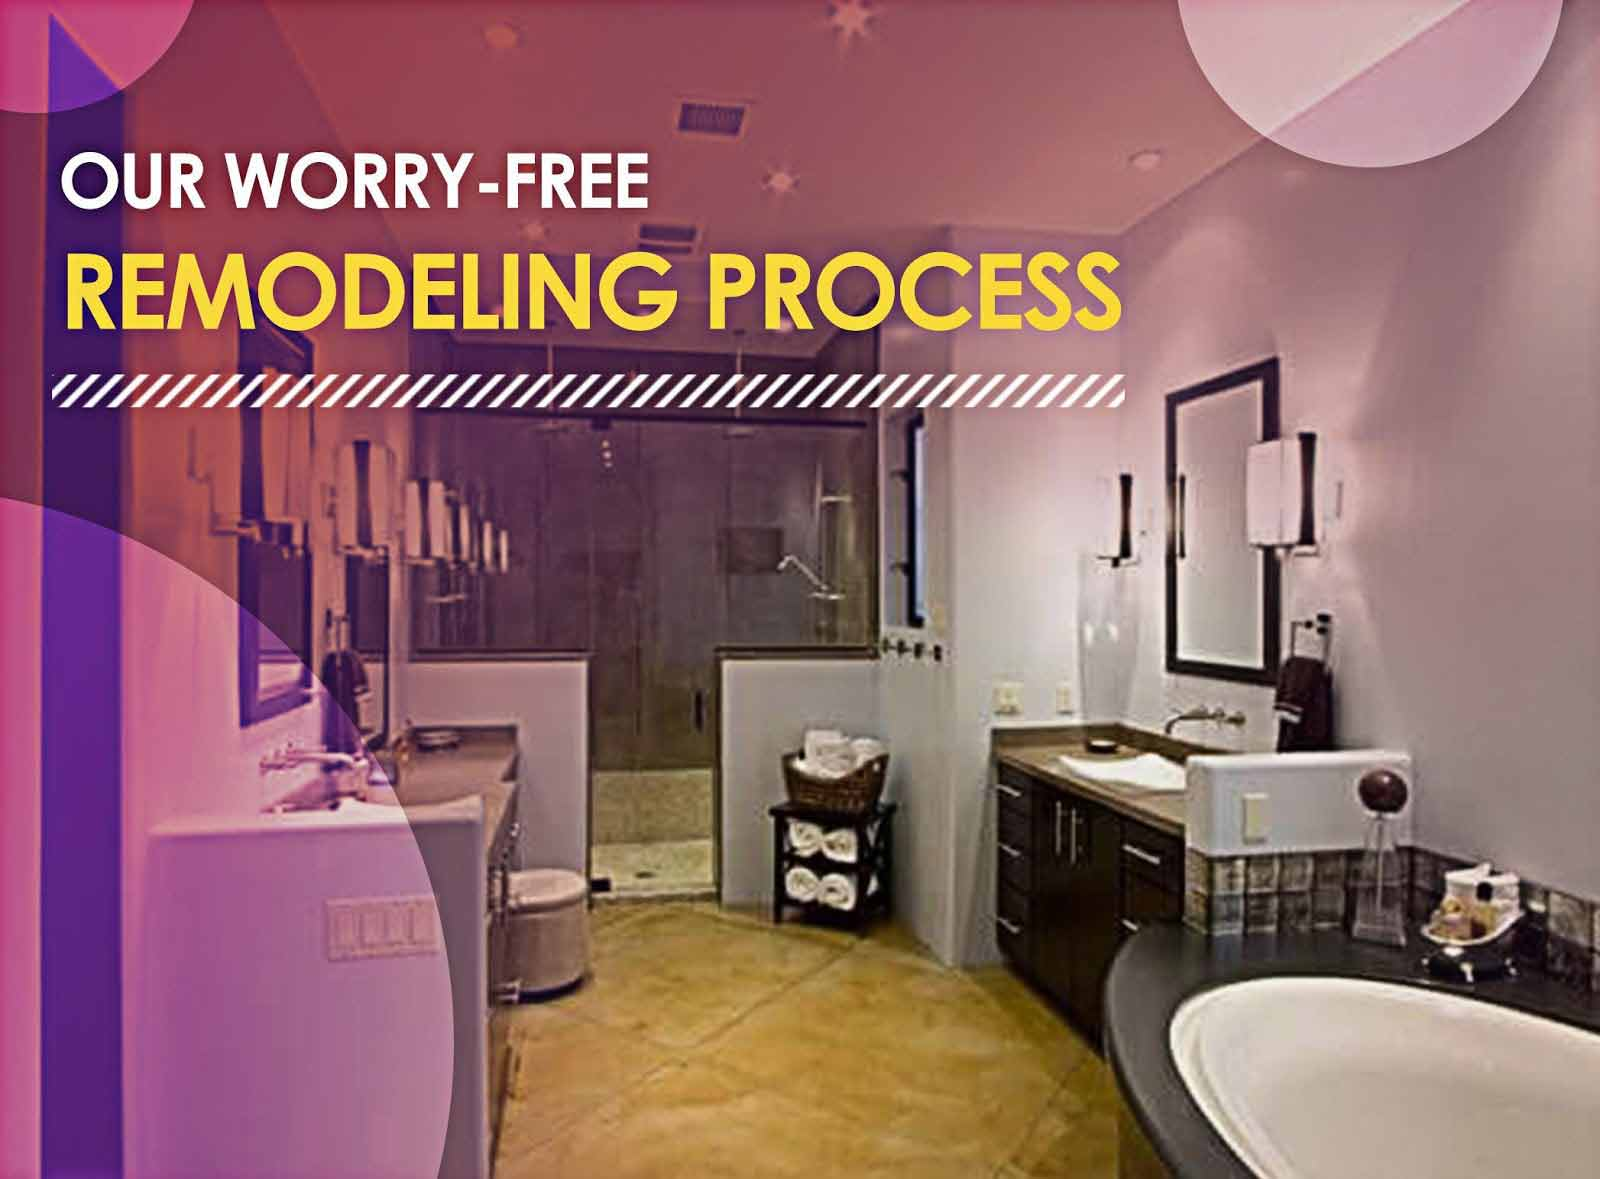 Our Worry-Free Remodeling Process